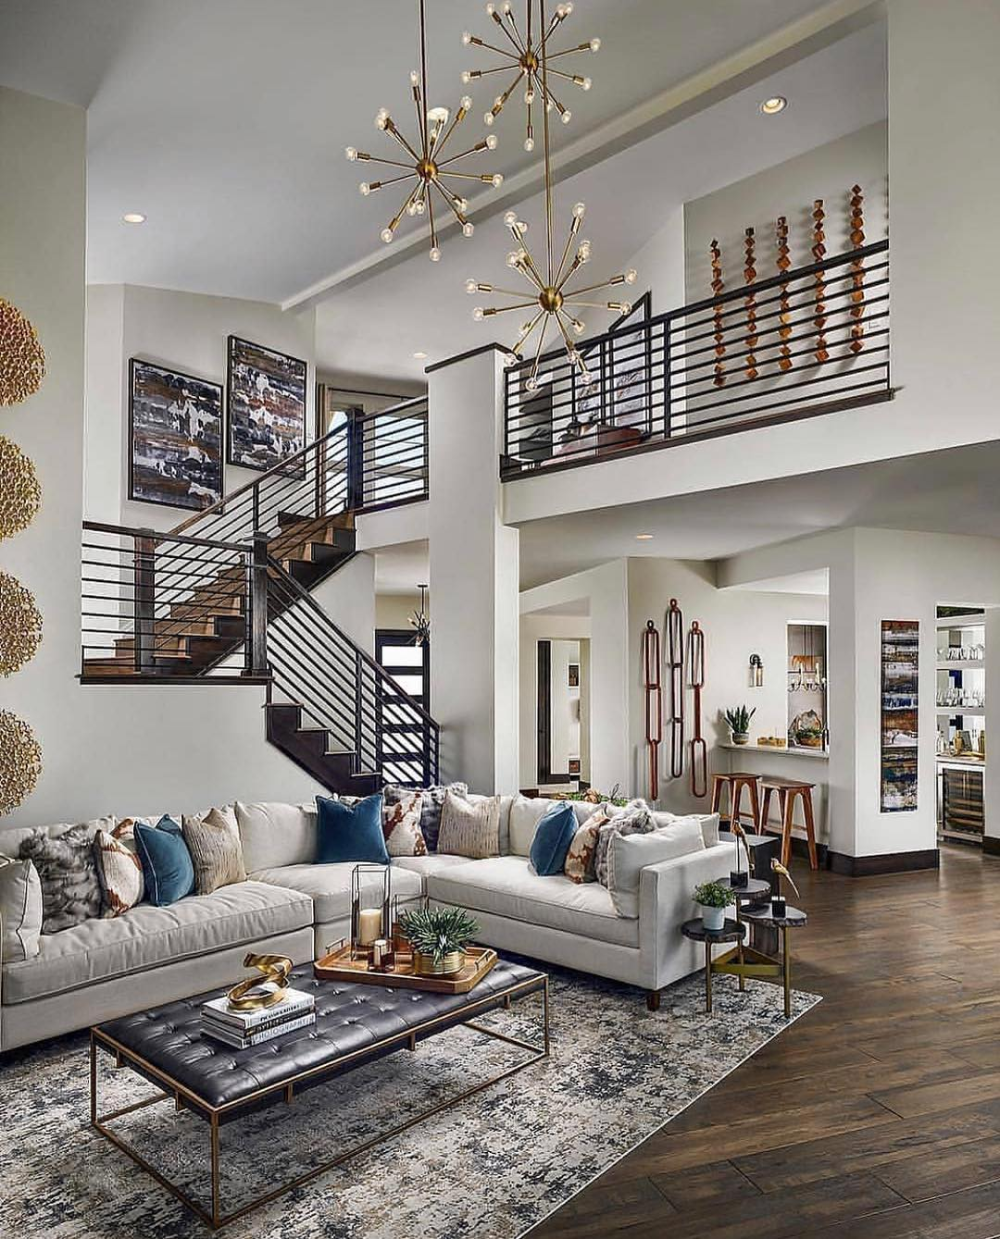 Great Ideas For Beginners In Living Room Decoration 2019 Page 26 Of 39 My Blog Cheap Home Decor Online Luxury House Designs Luxury Home Decor